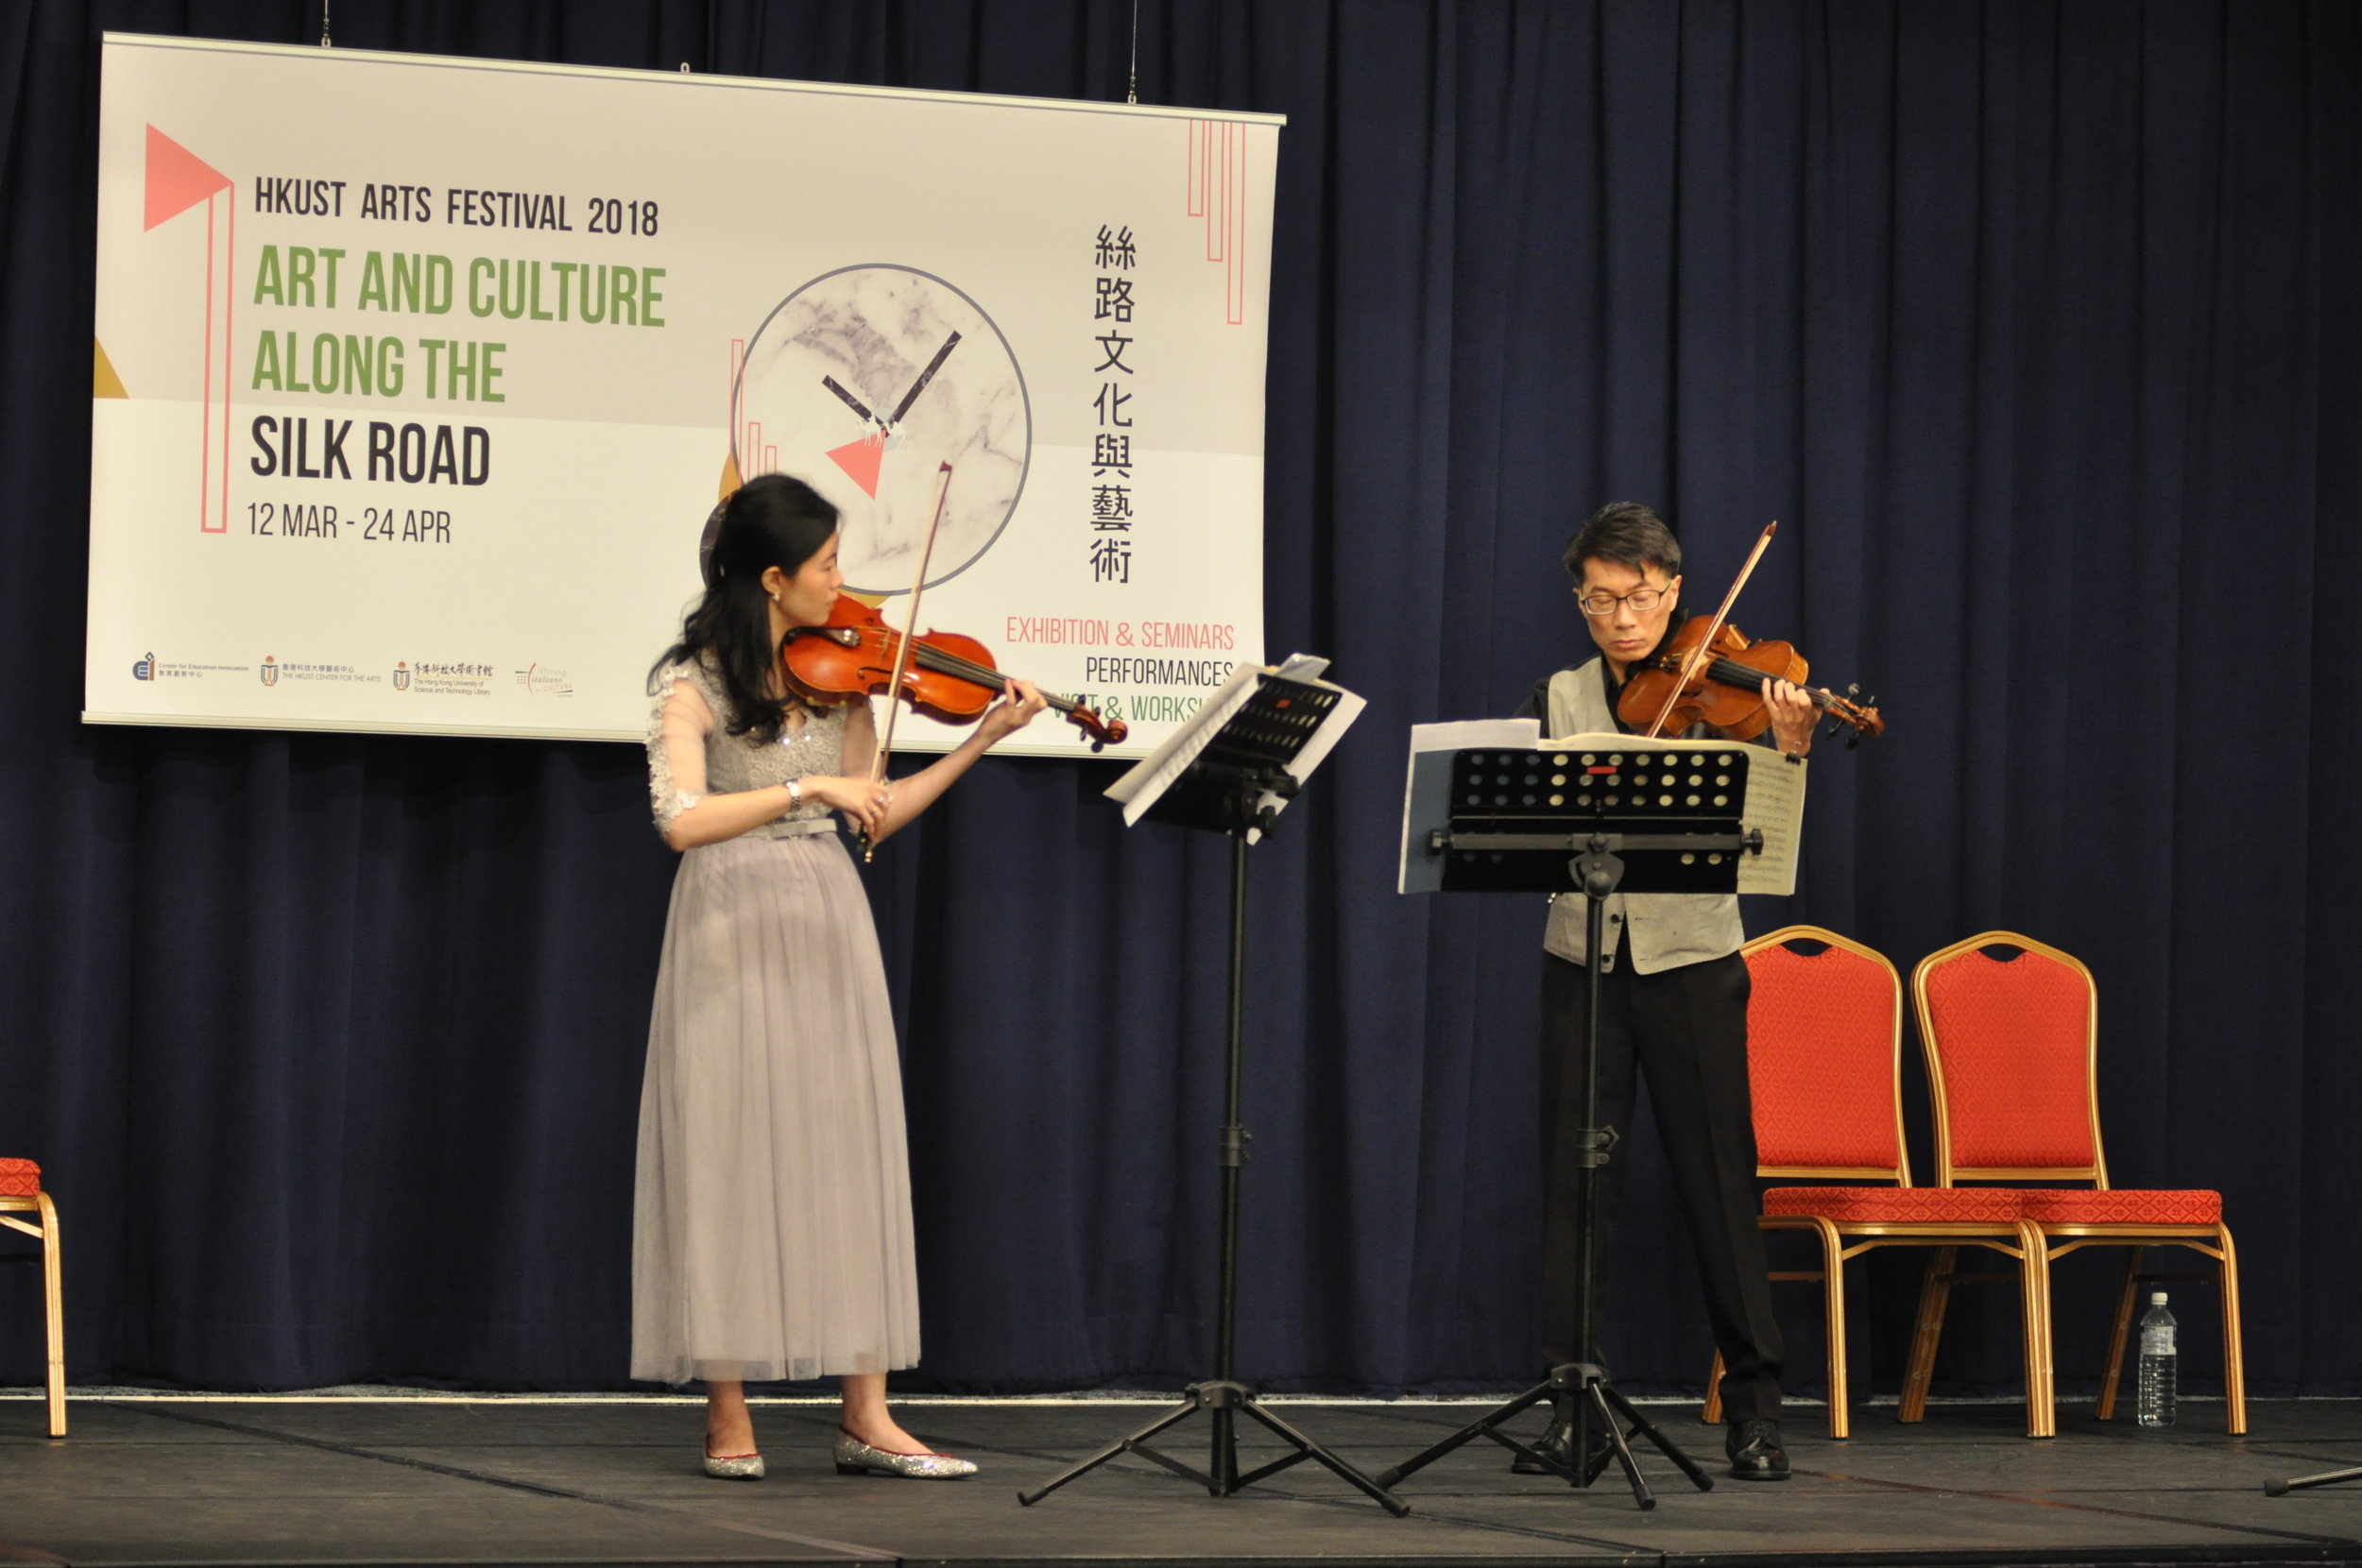 HKUST Arts Festival 2018 - Violin and Viola Duo Recital by Winty Wan and Gilbert Sak  Apr 10, 2018